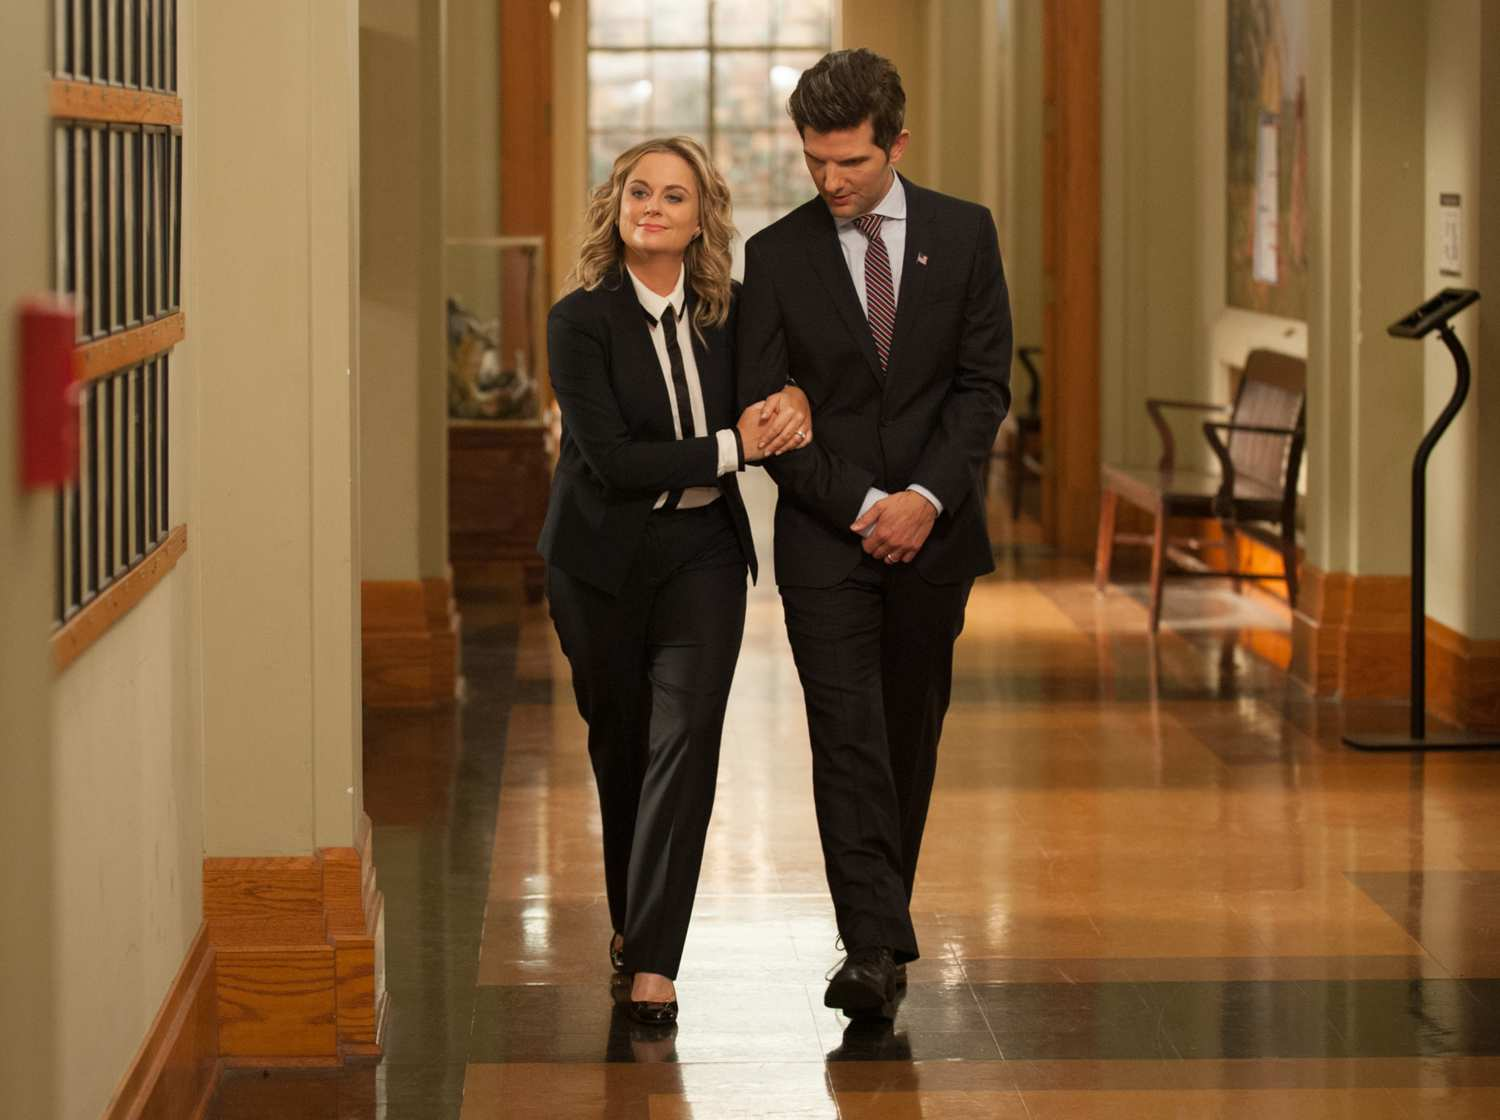 Amy Poehler as Leslie Knope and Adam Scott as Ben Wyatt in Parks and Recreation. Credit: NBC